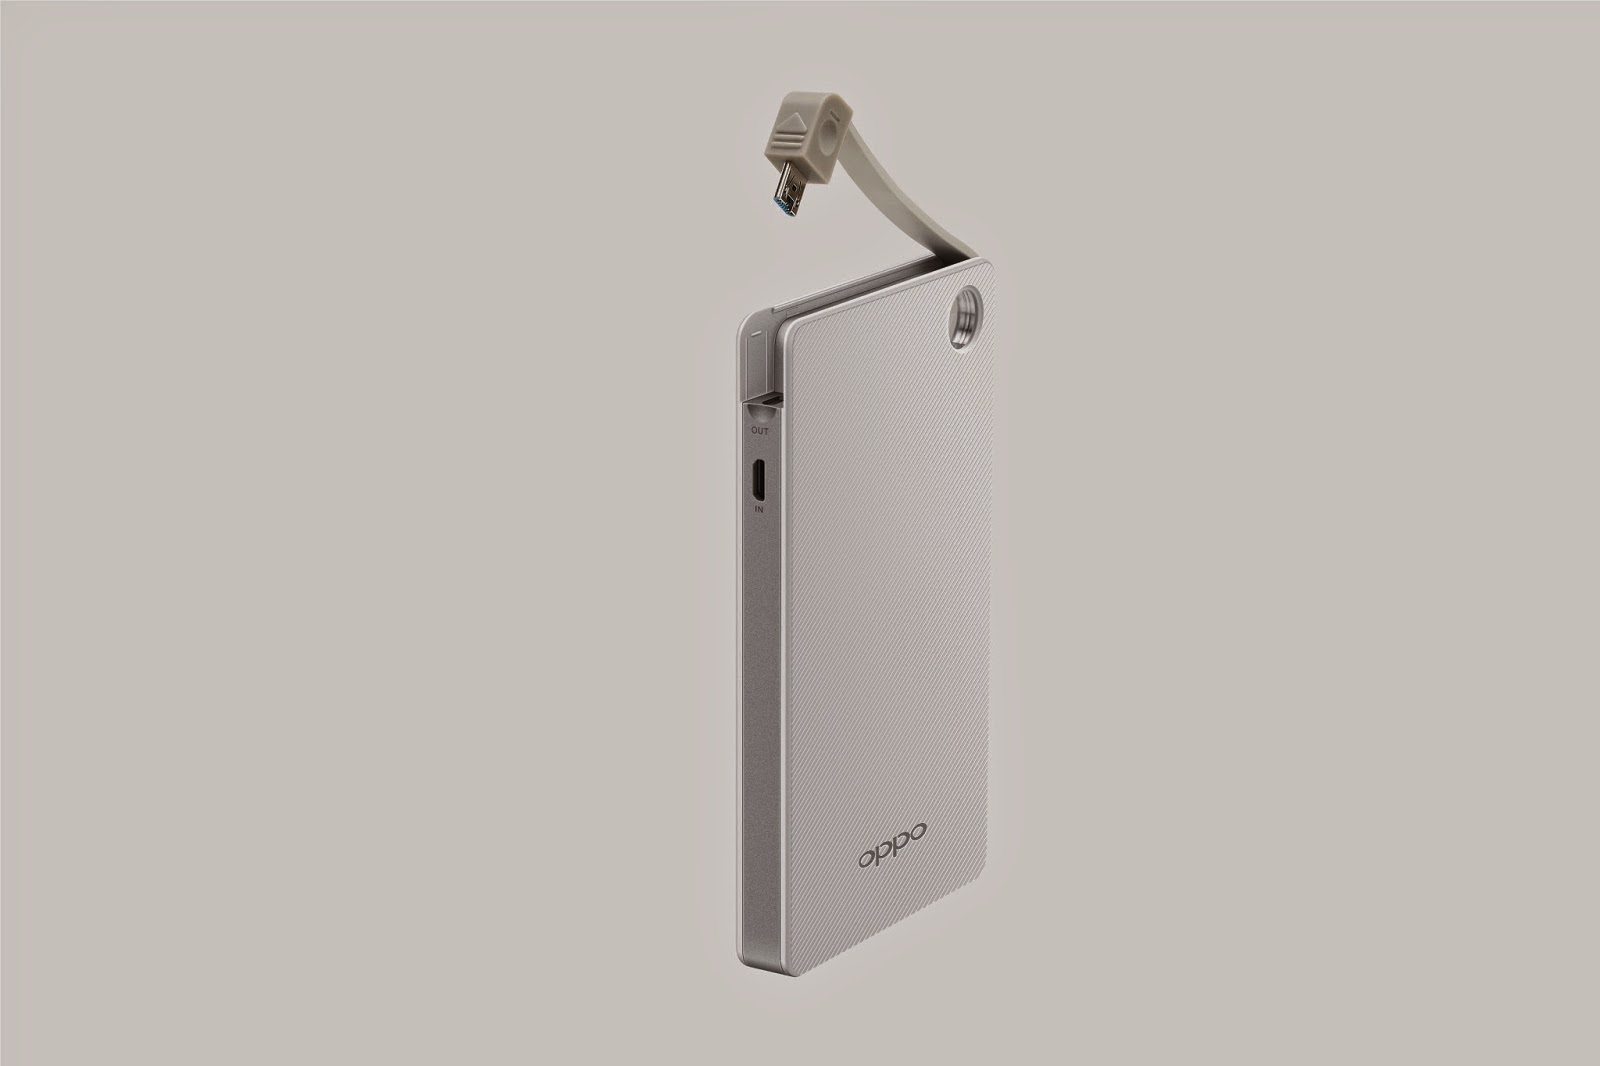 Oppo VOOC powerbank